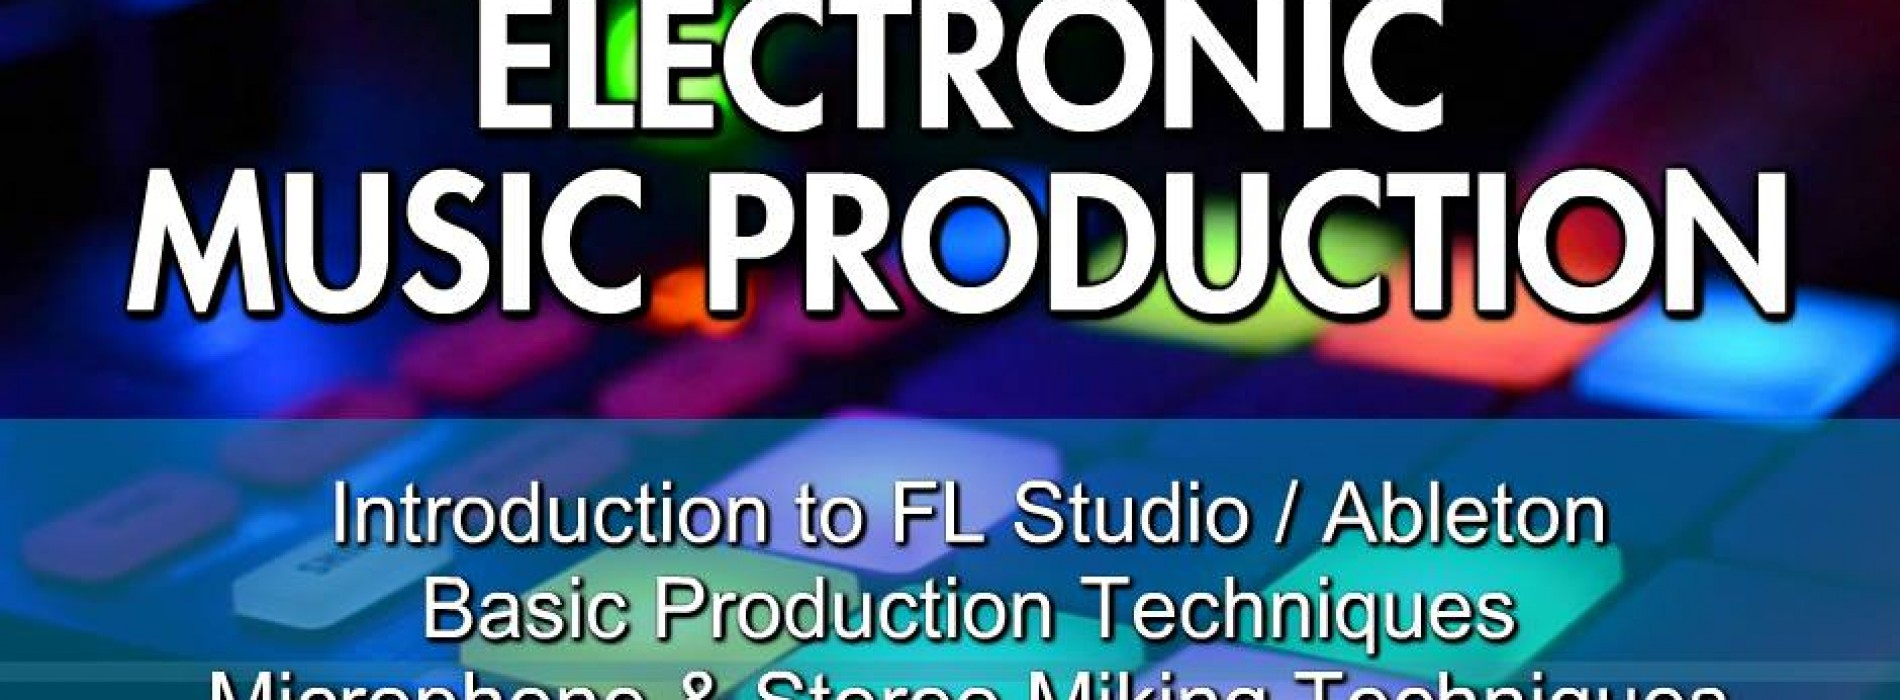 Dig Electronic Music Productions?